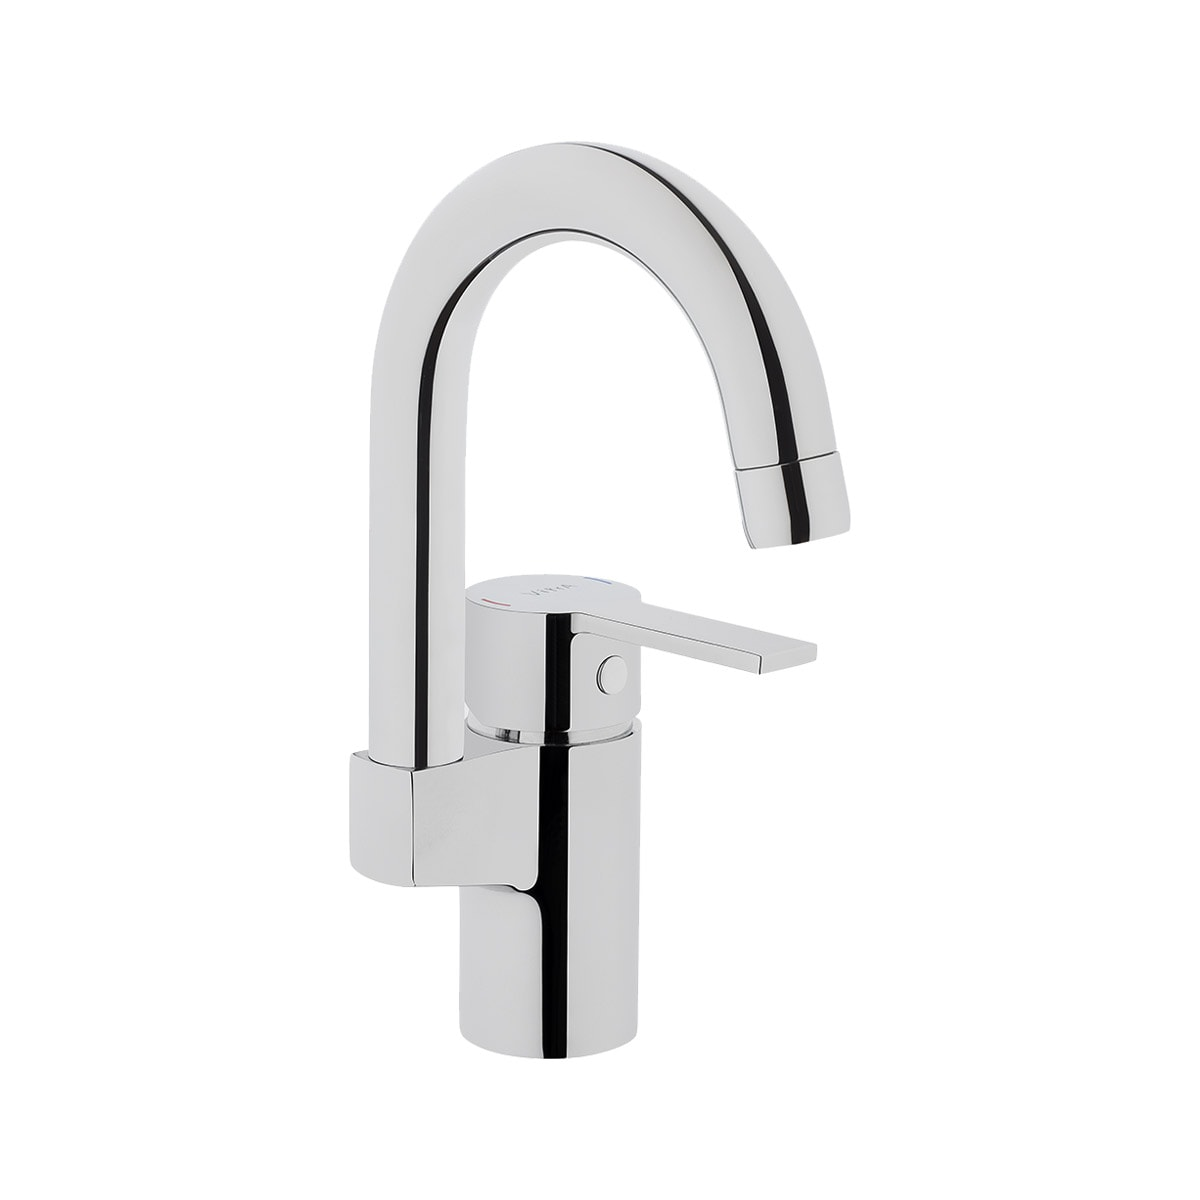 Fold S Basin Mixer (with swivel spout)